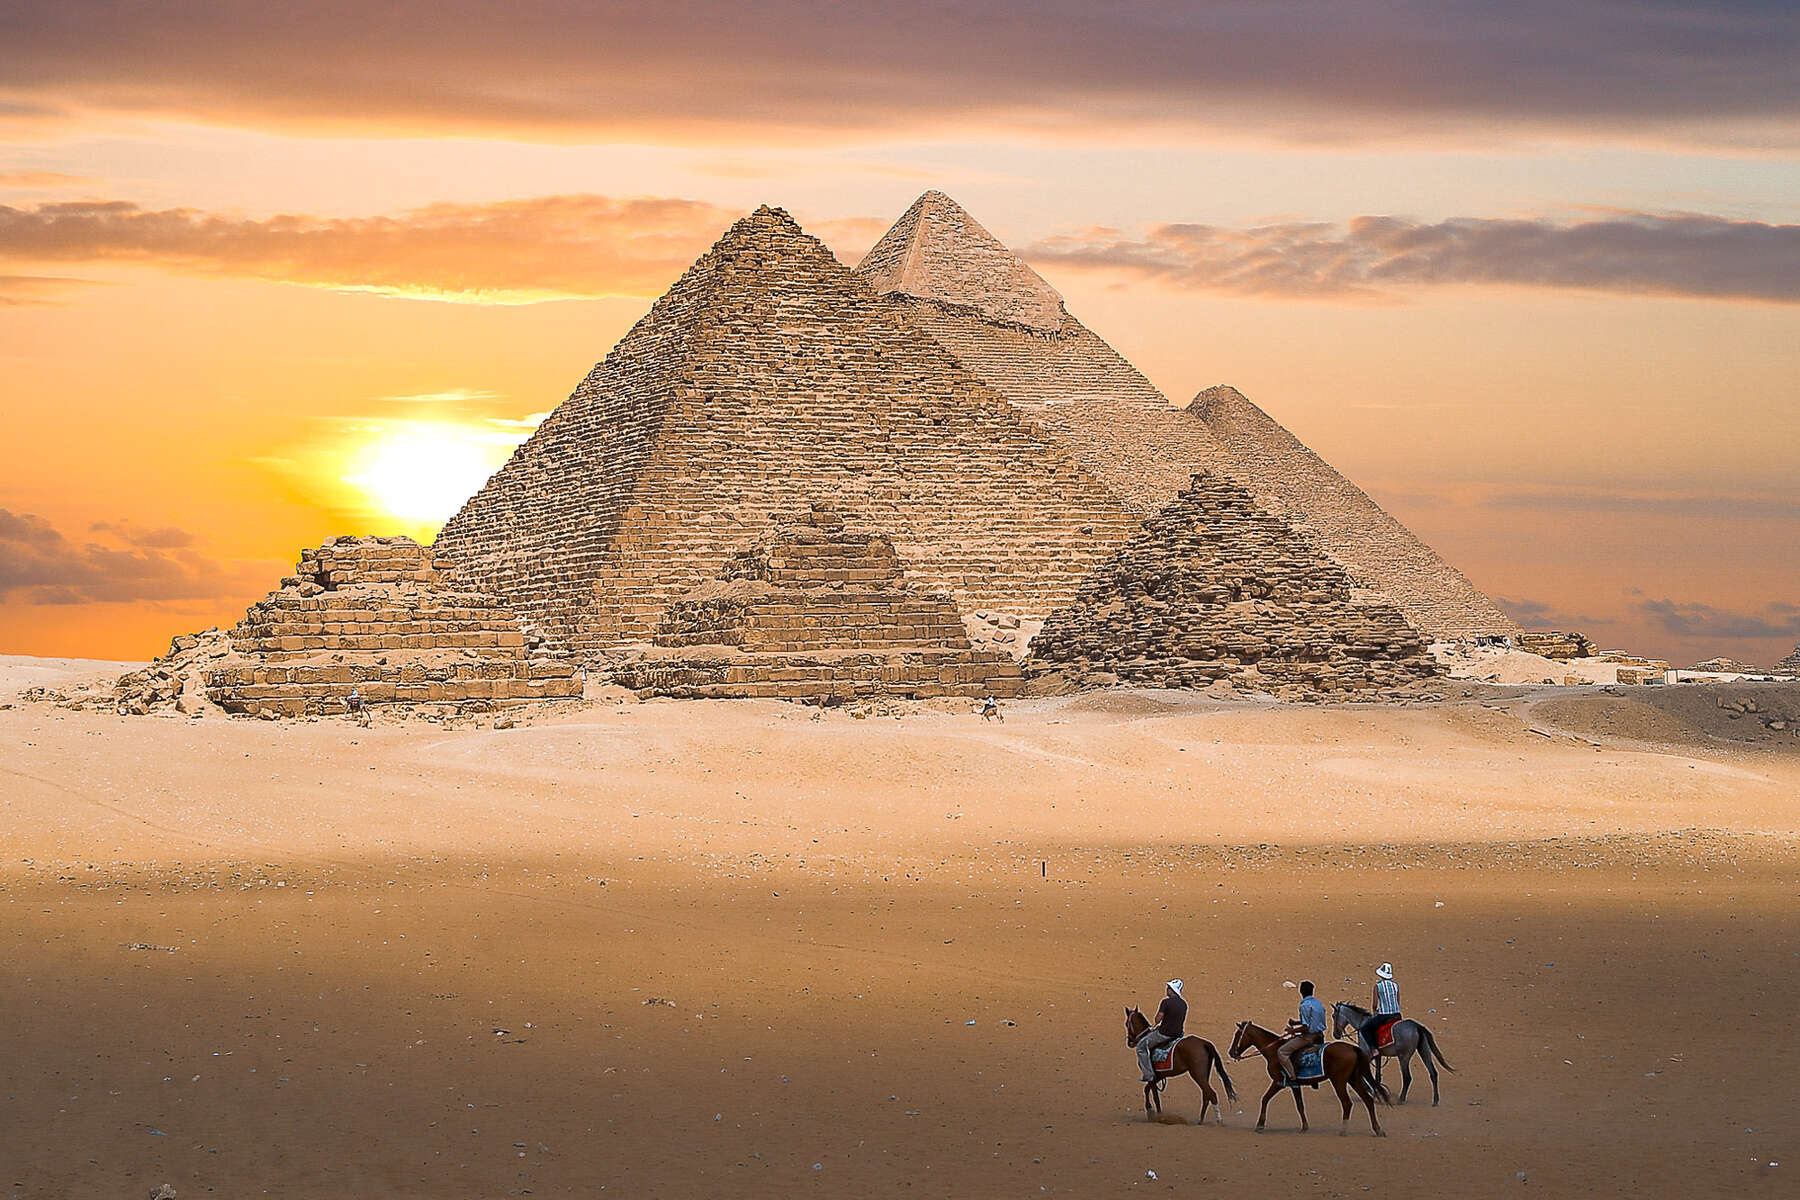 Riders approaching the pyramids in Egypt